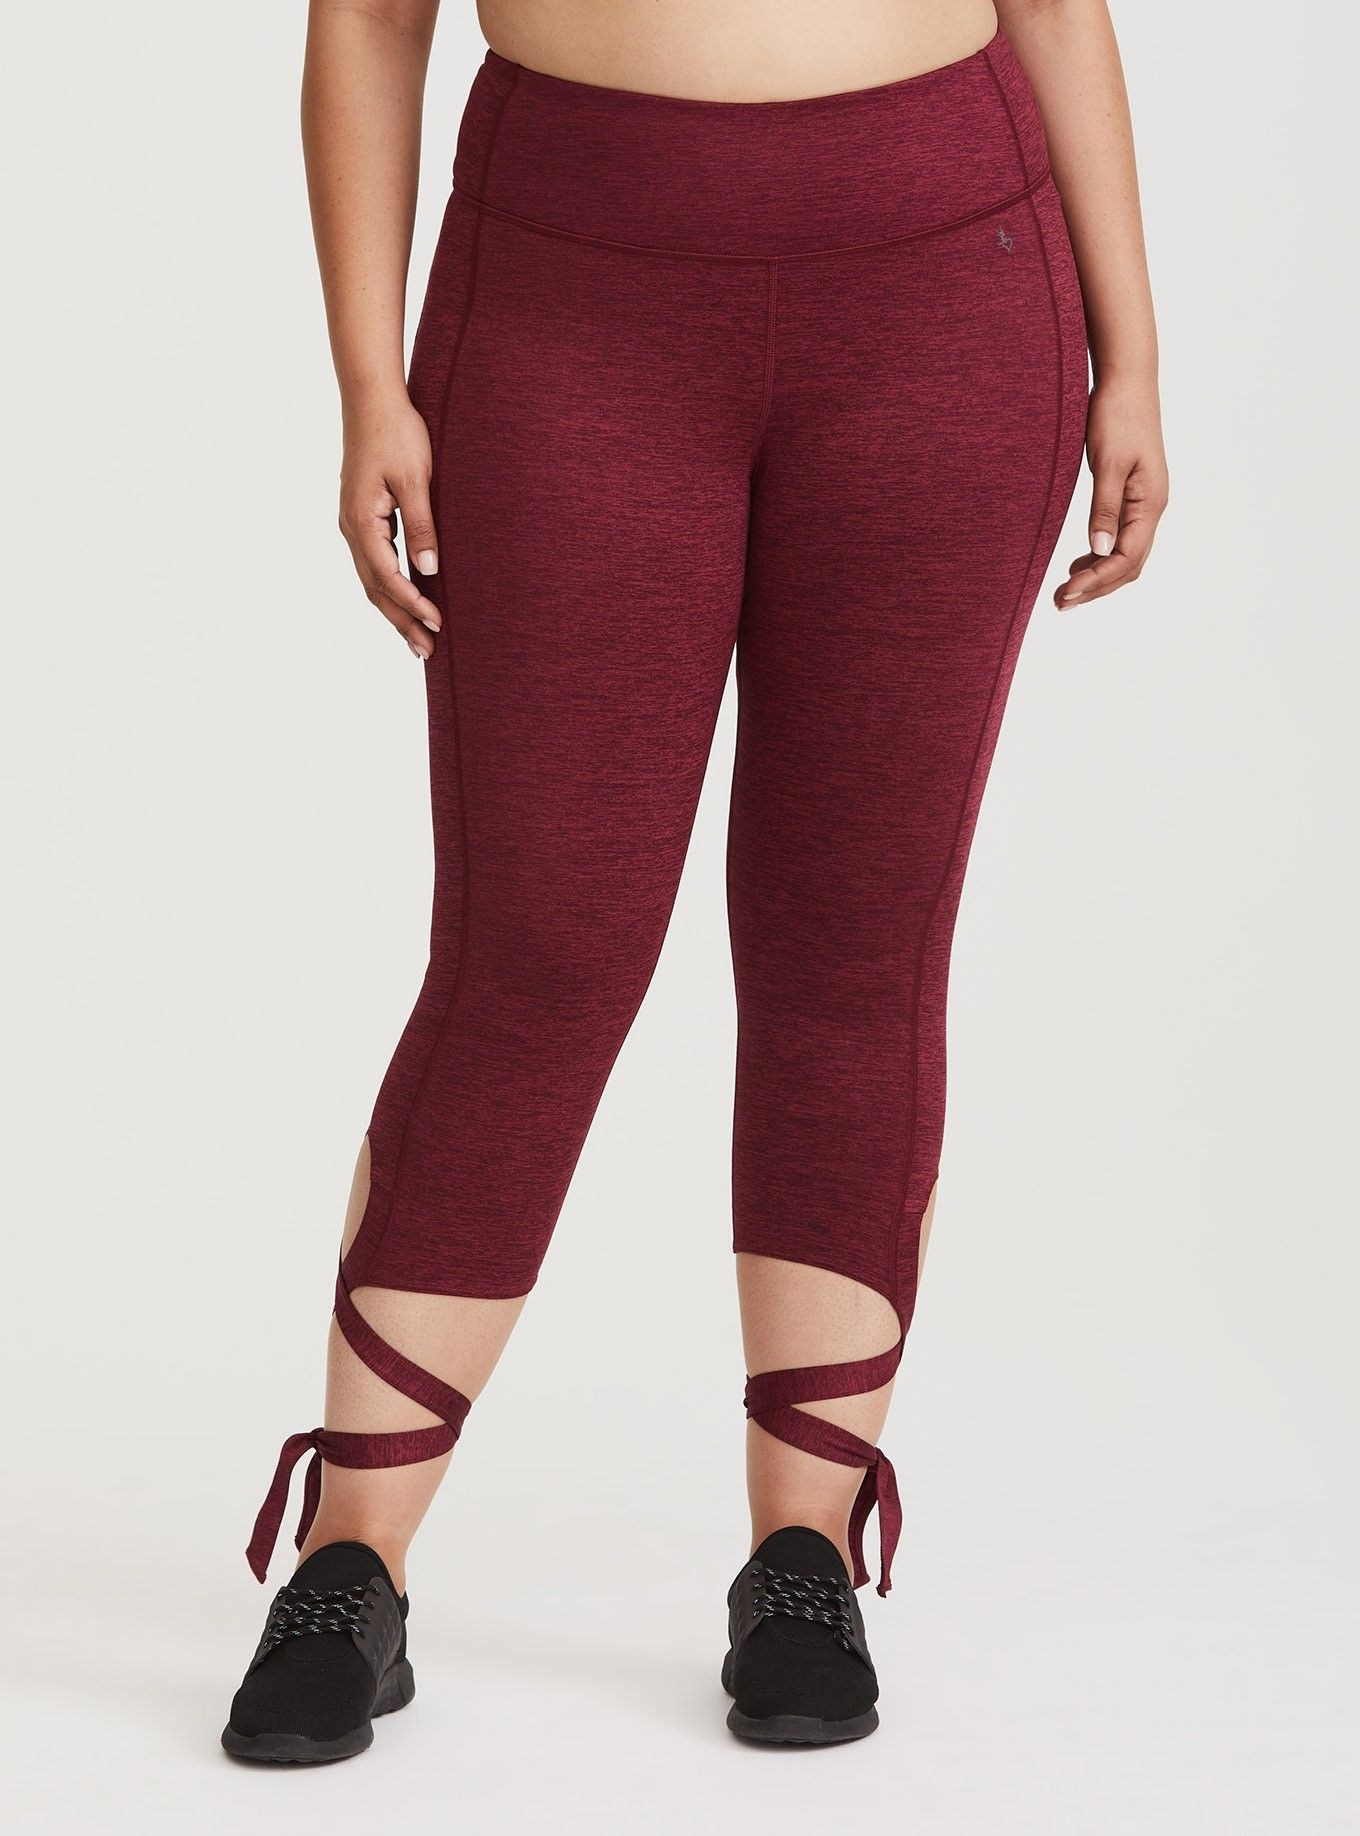 a4496bd85b2 Space Dye Tie Cuff Active Legging - Flirty tie cuffs are a trendy update to  these 4-way stretch